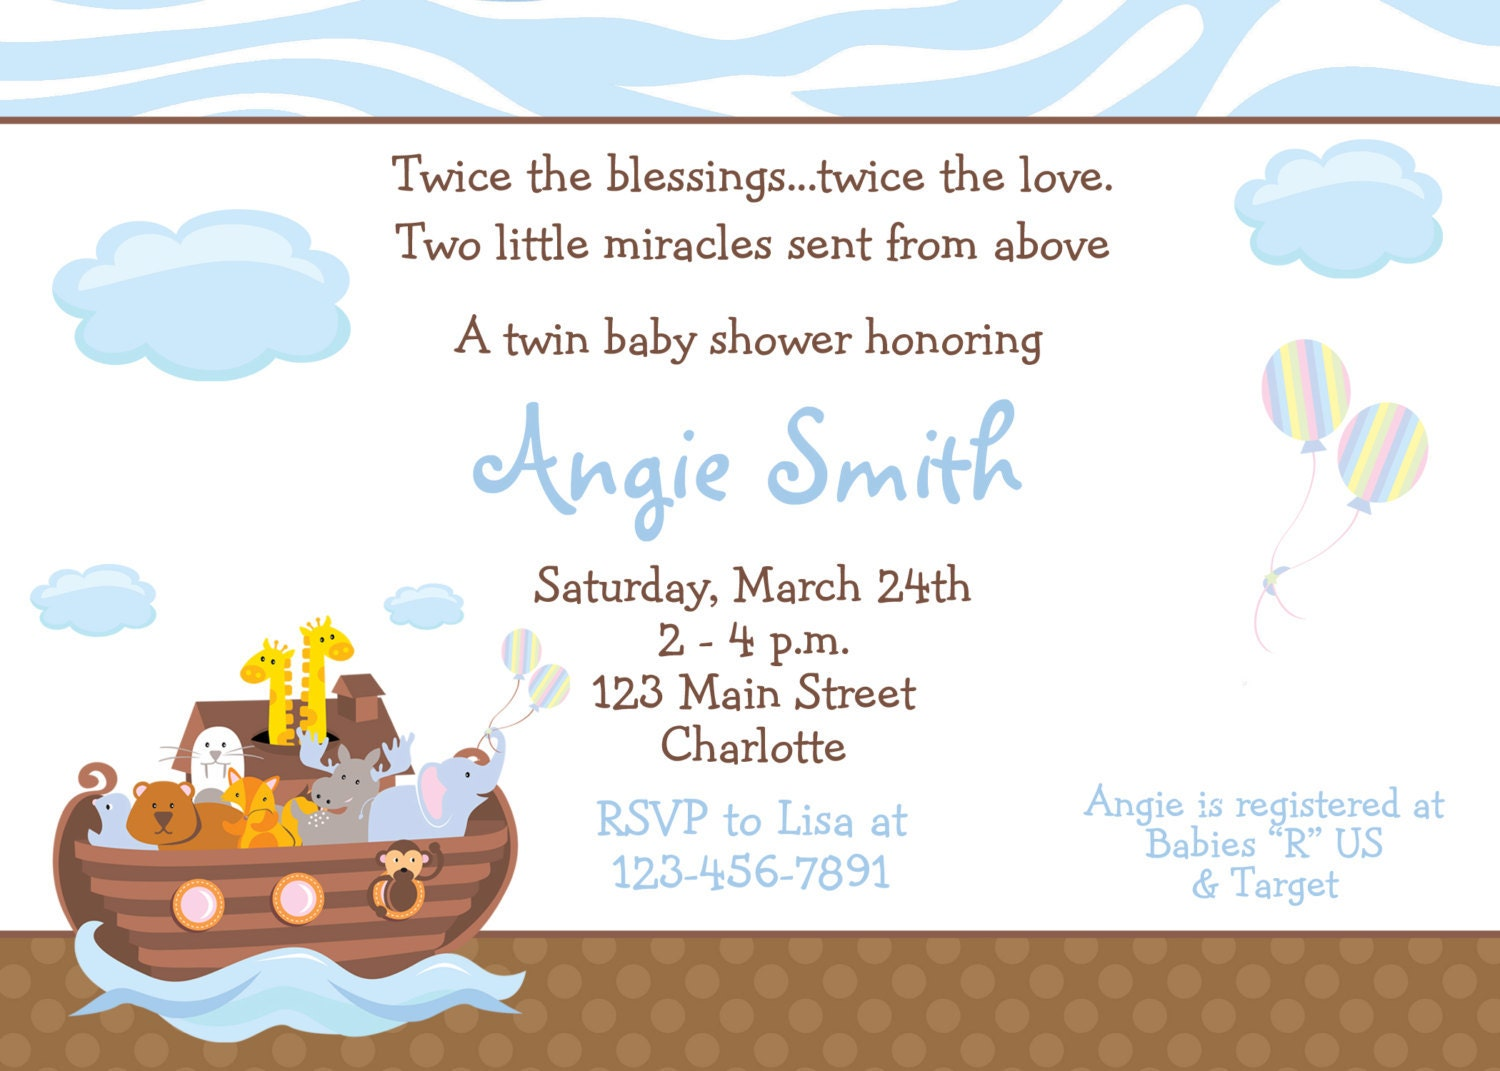 Noahs Ark Baby Shower Invitations with awesome invitation ideas